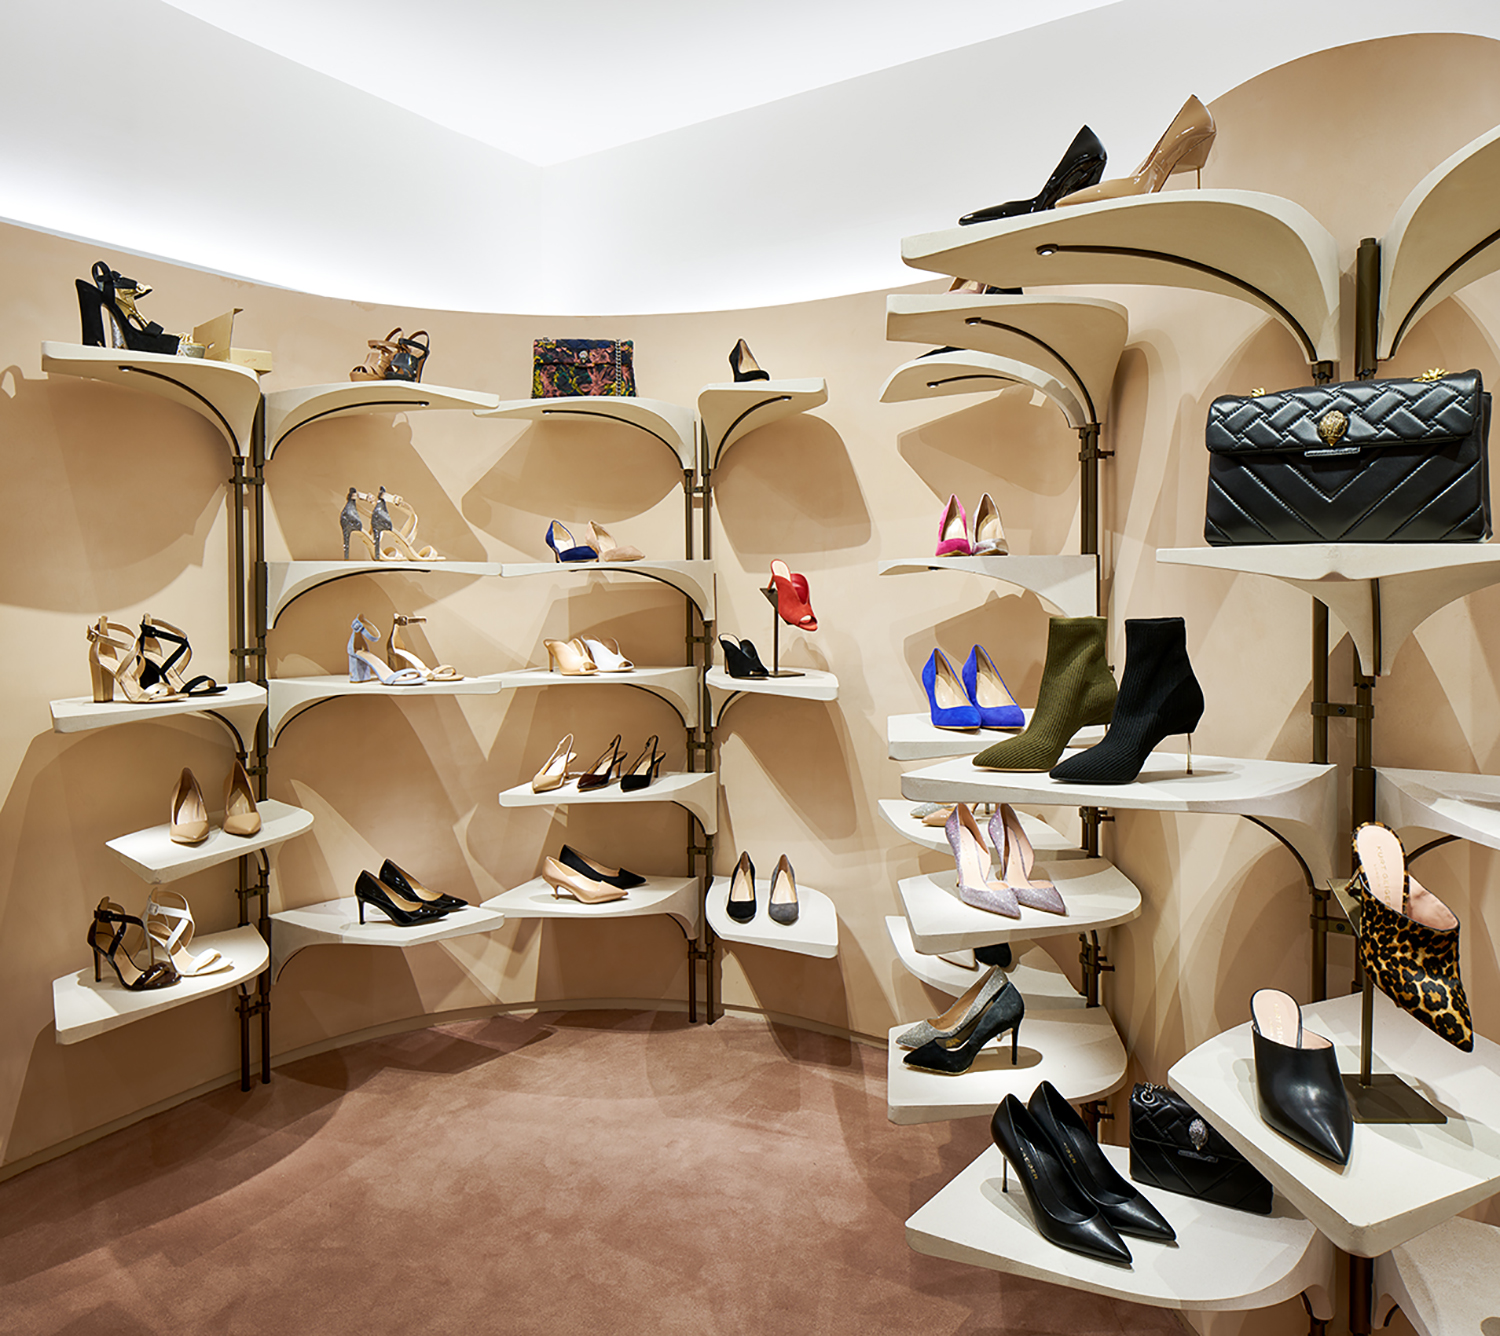 Jamie-Fobert-Architects-Retail-Interiors-Kurt-Geiger-Selfridges-Design-Concept-4